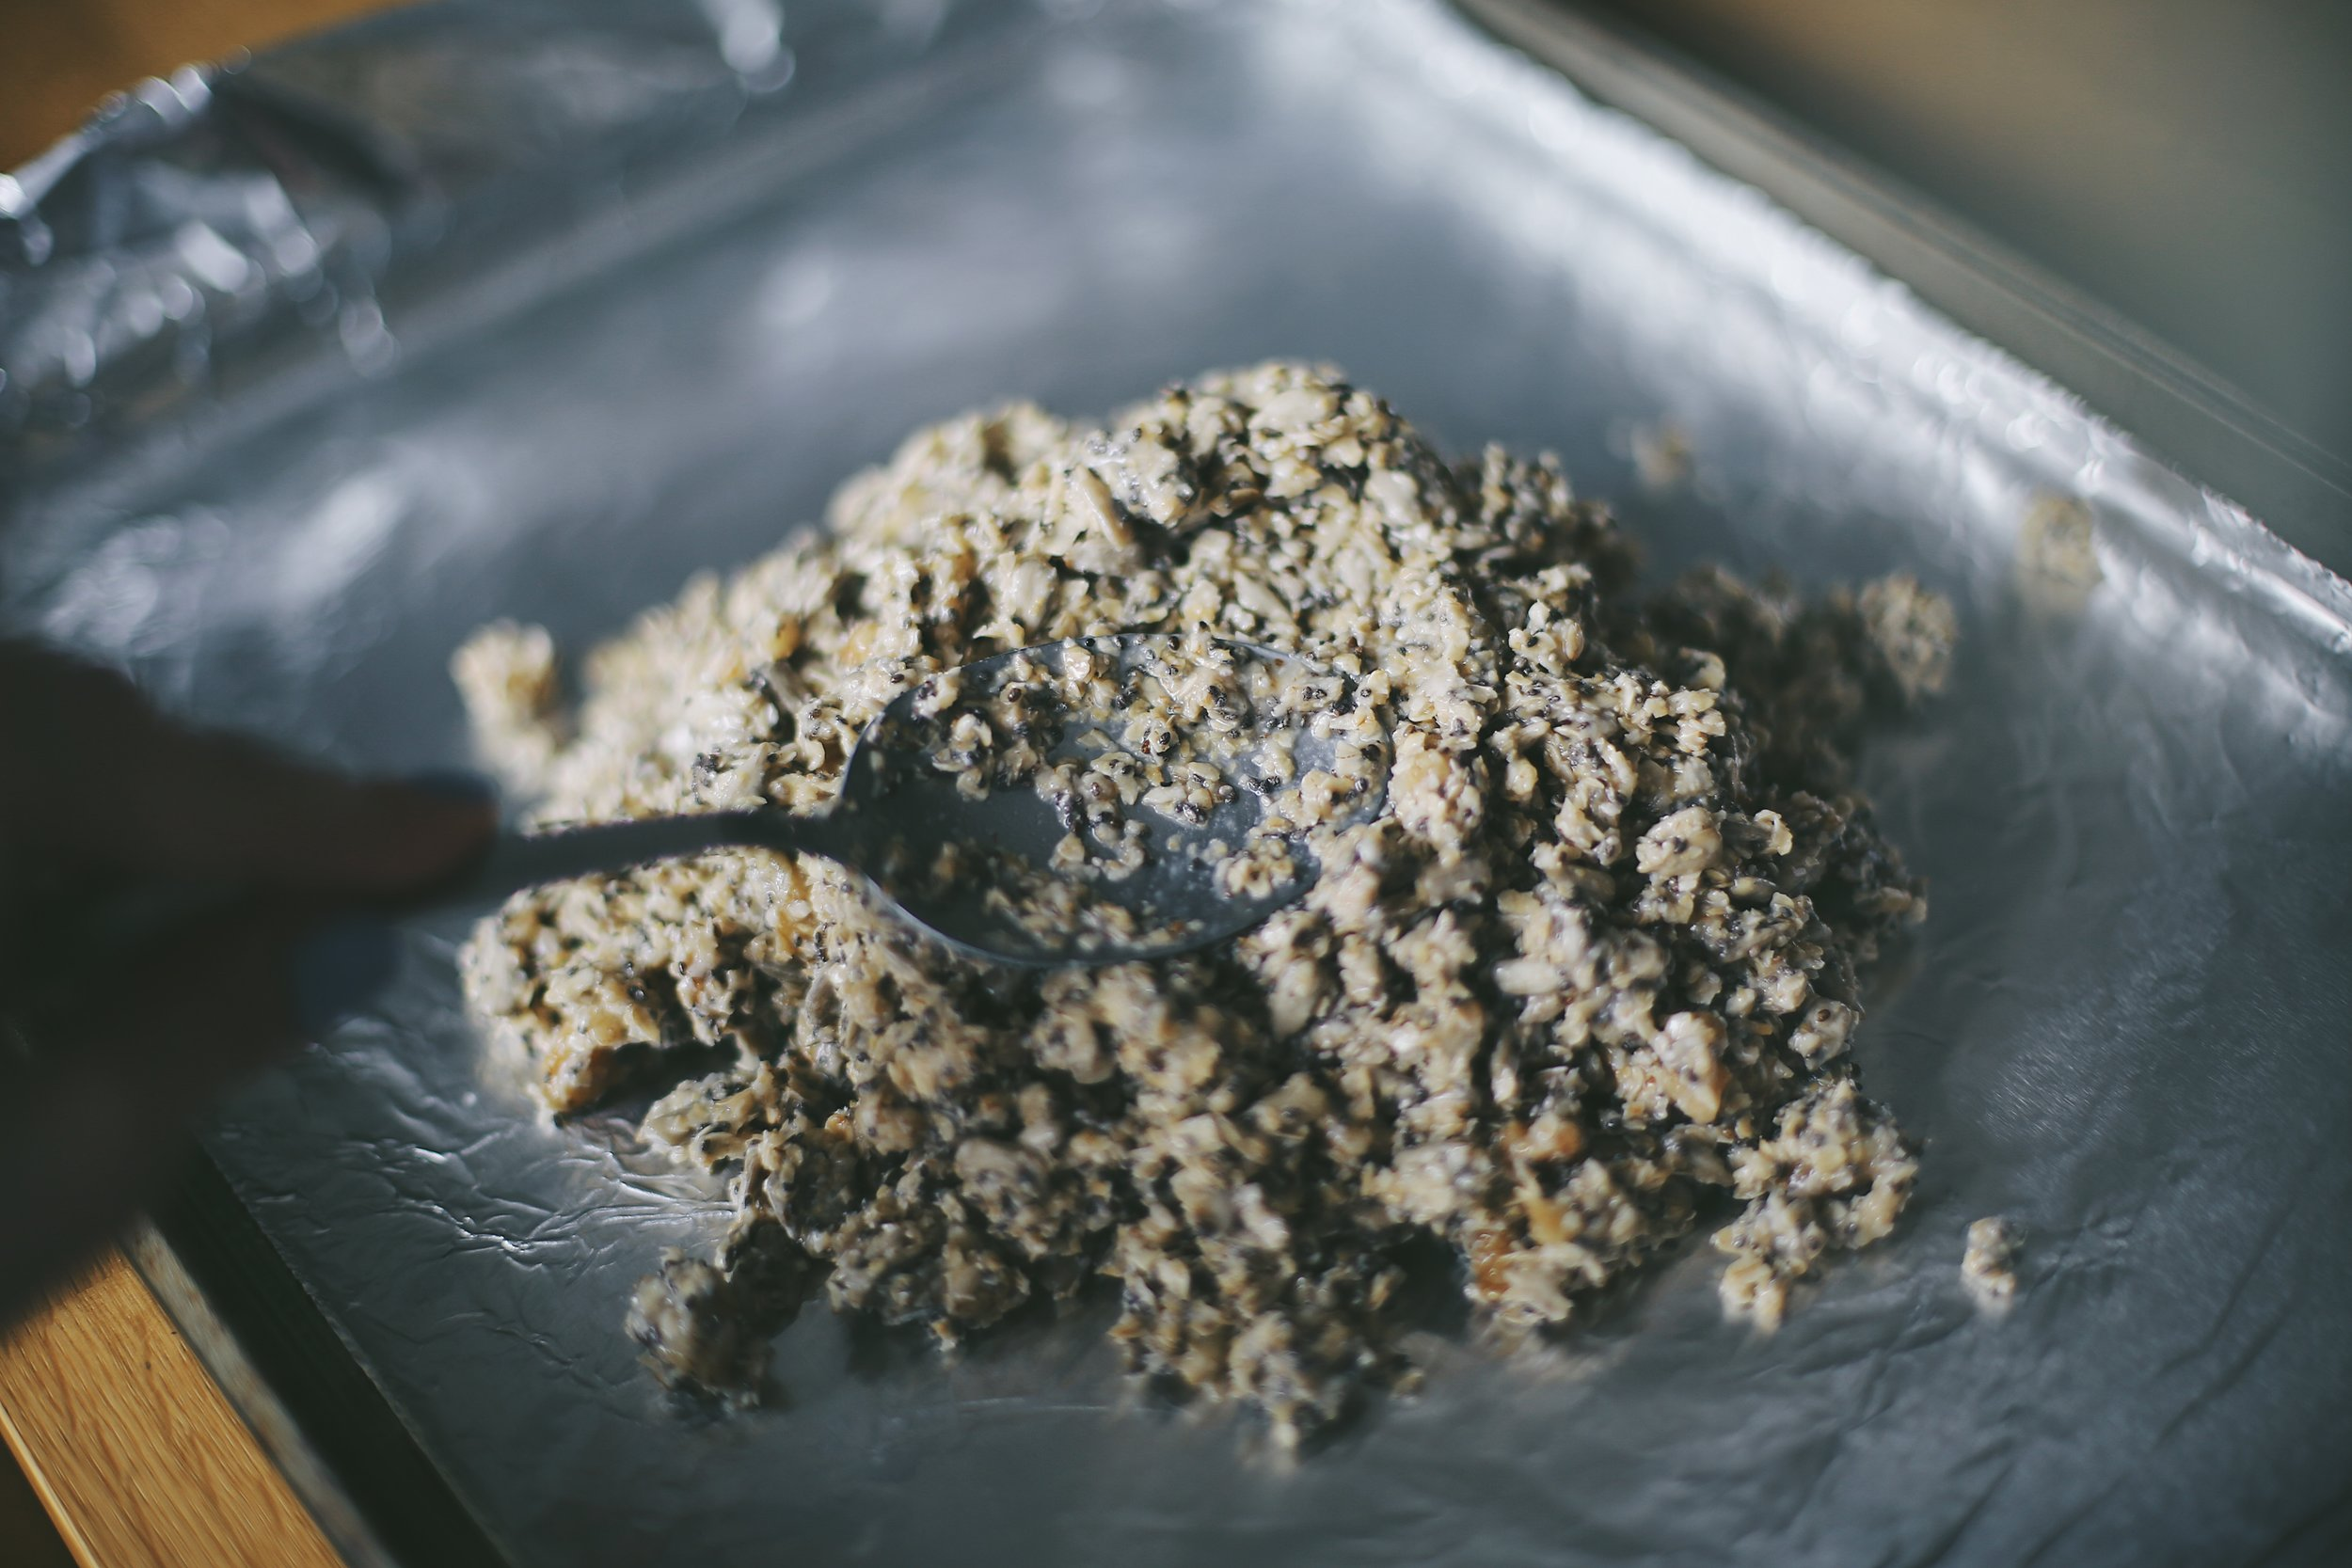 If it looks like MUSHY BIRD FOOD, you'RE DOING it right! - 8. Spread the mixture evenly to the coated parchment paper you have ready because you prepped like a BOSS.